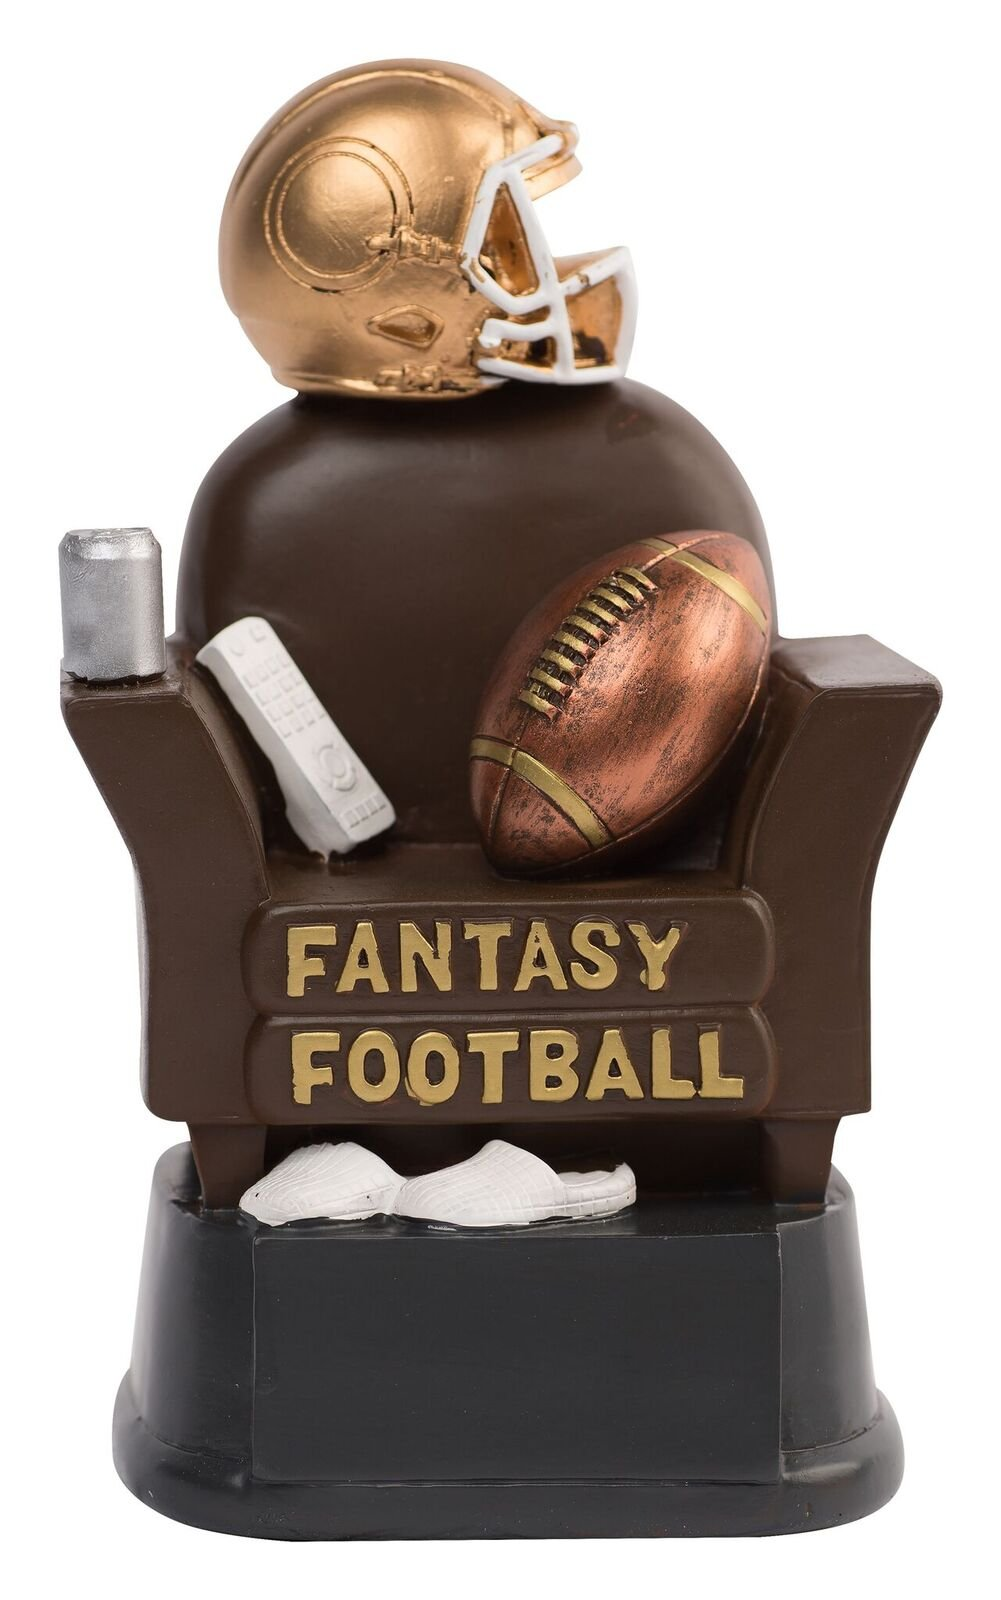 NEW Fantasy Football Couch Trophy (Brown) - UP TO 3 LINE ENGRAVING PLATE AVAILABLE UPON REQUEST